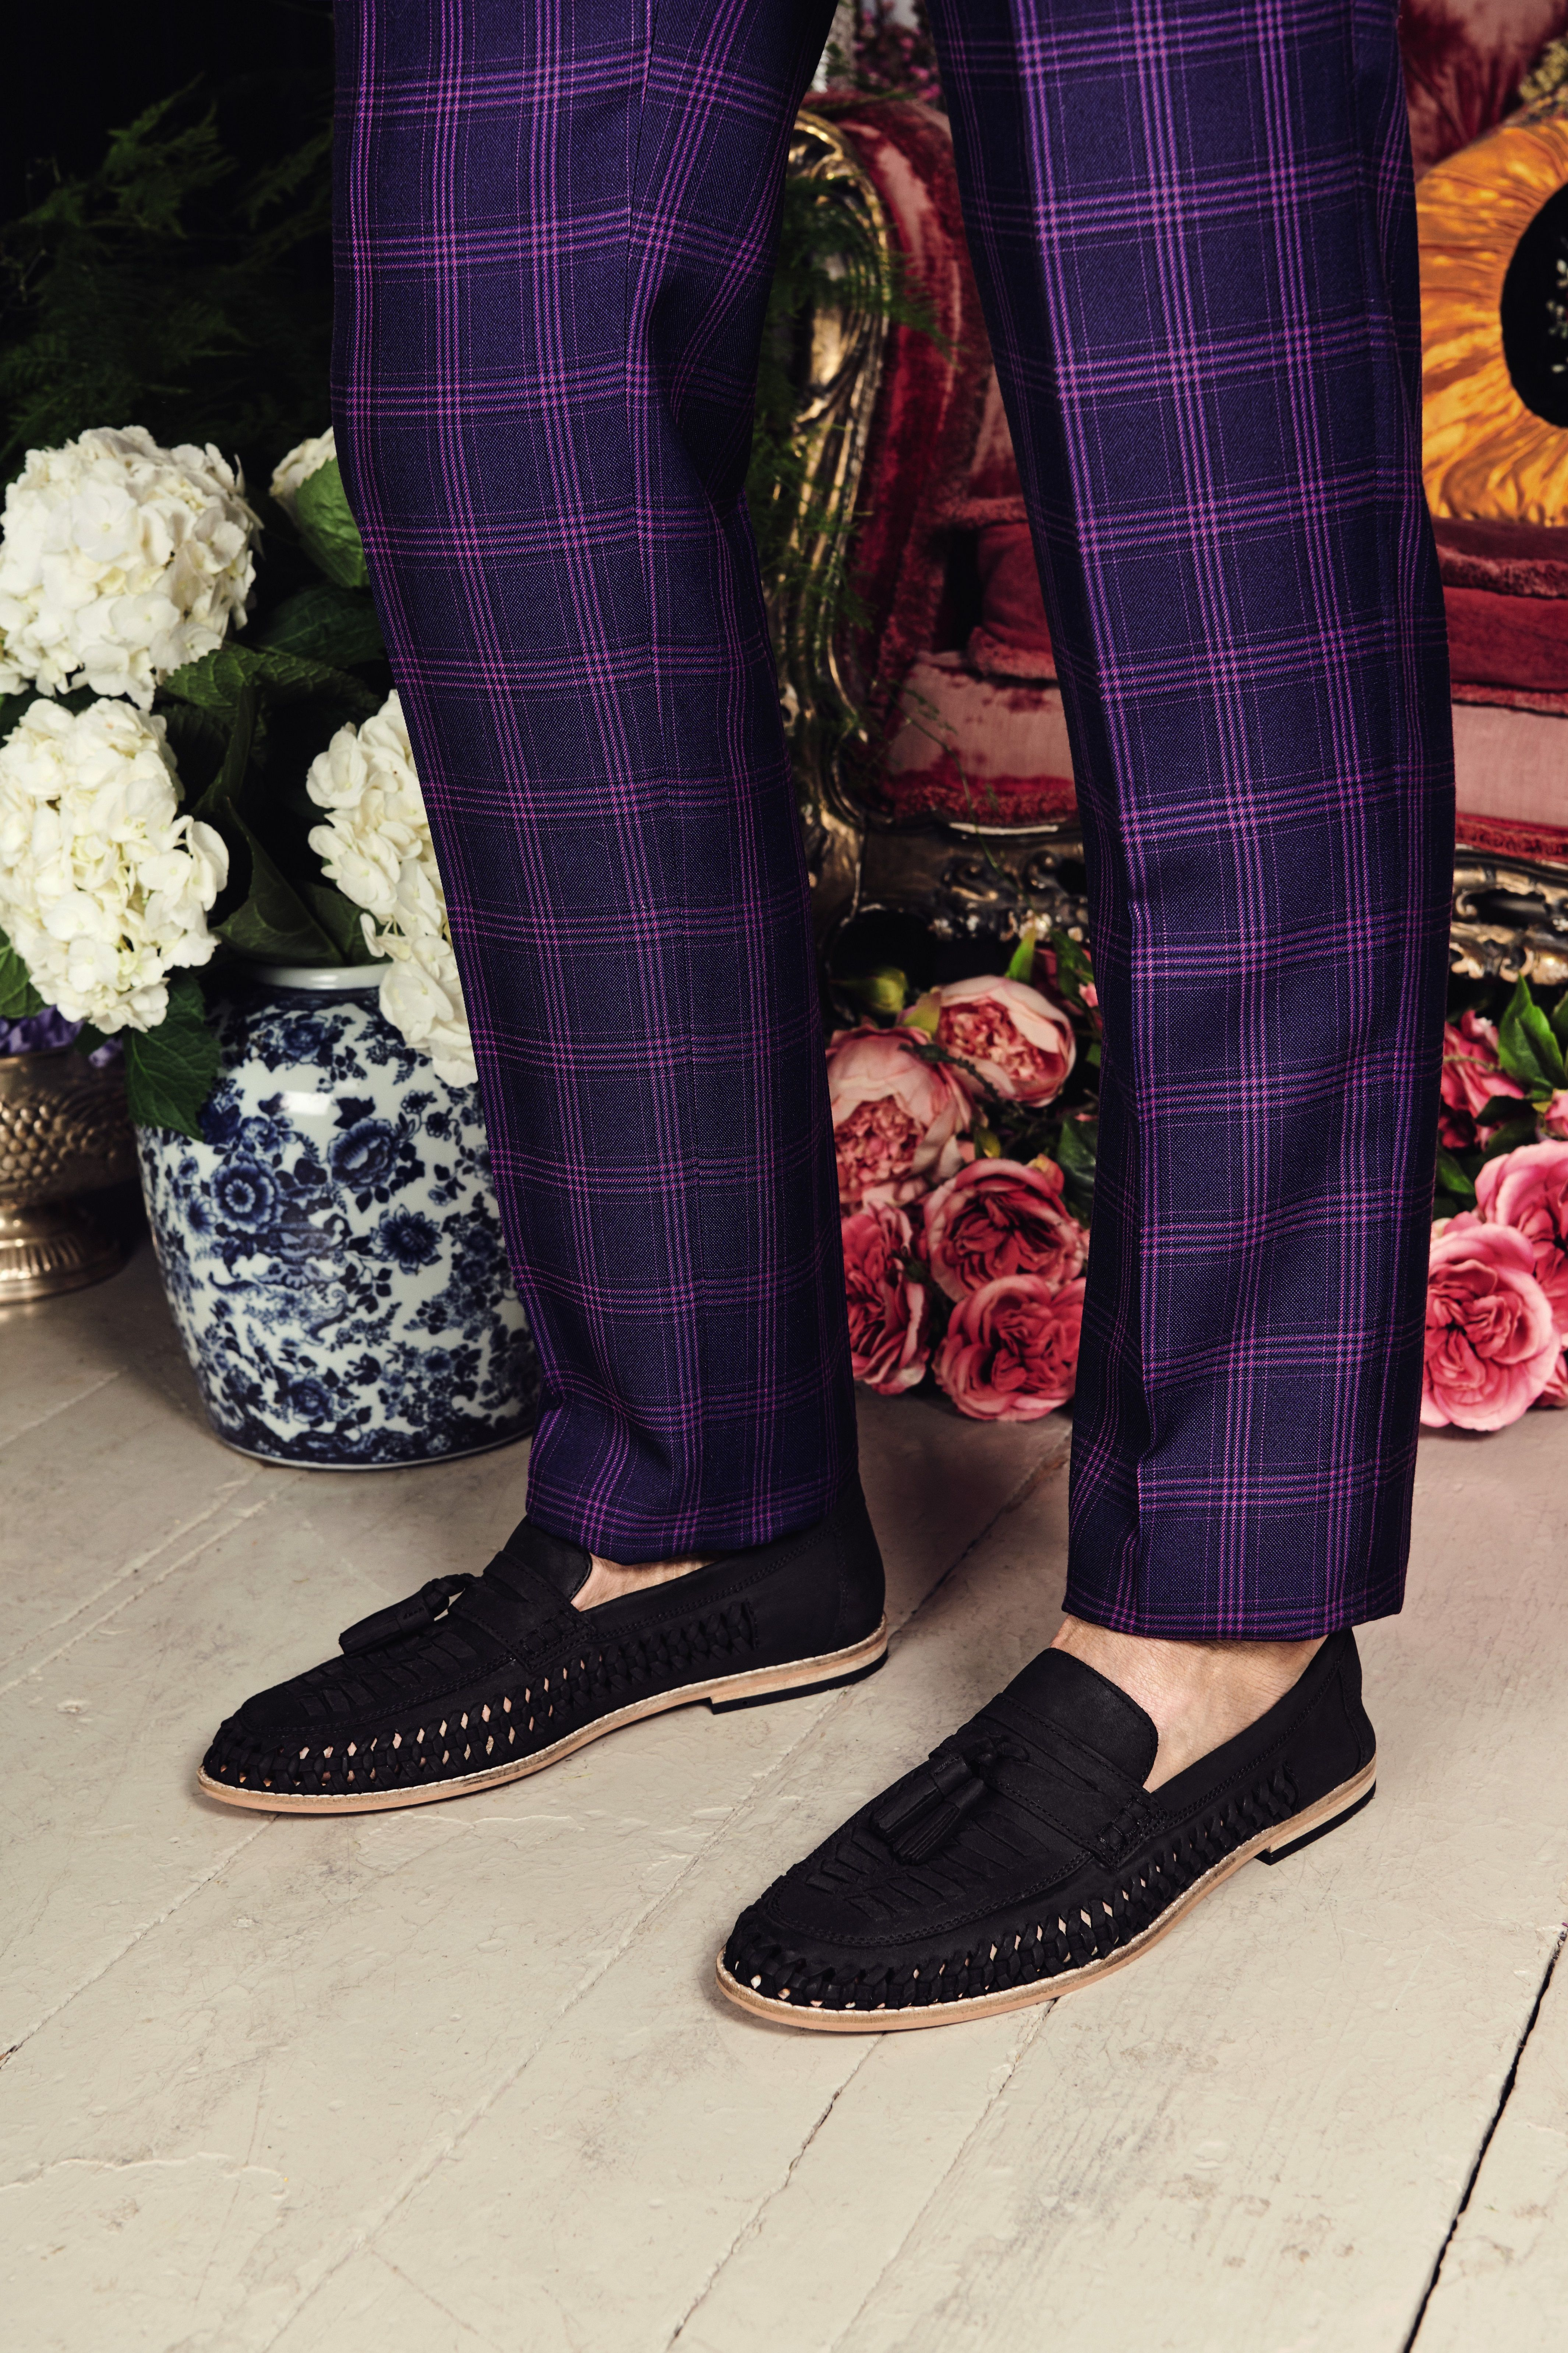 A great pair of loafers should be your summer event shoe